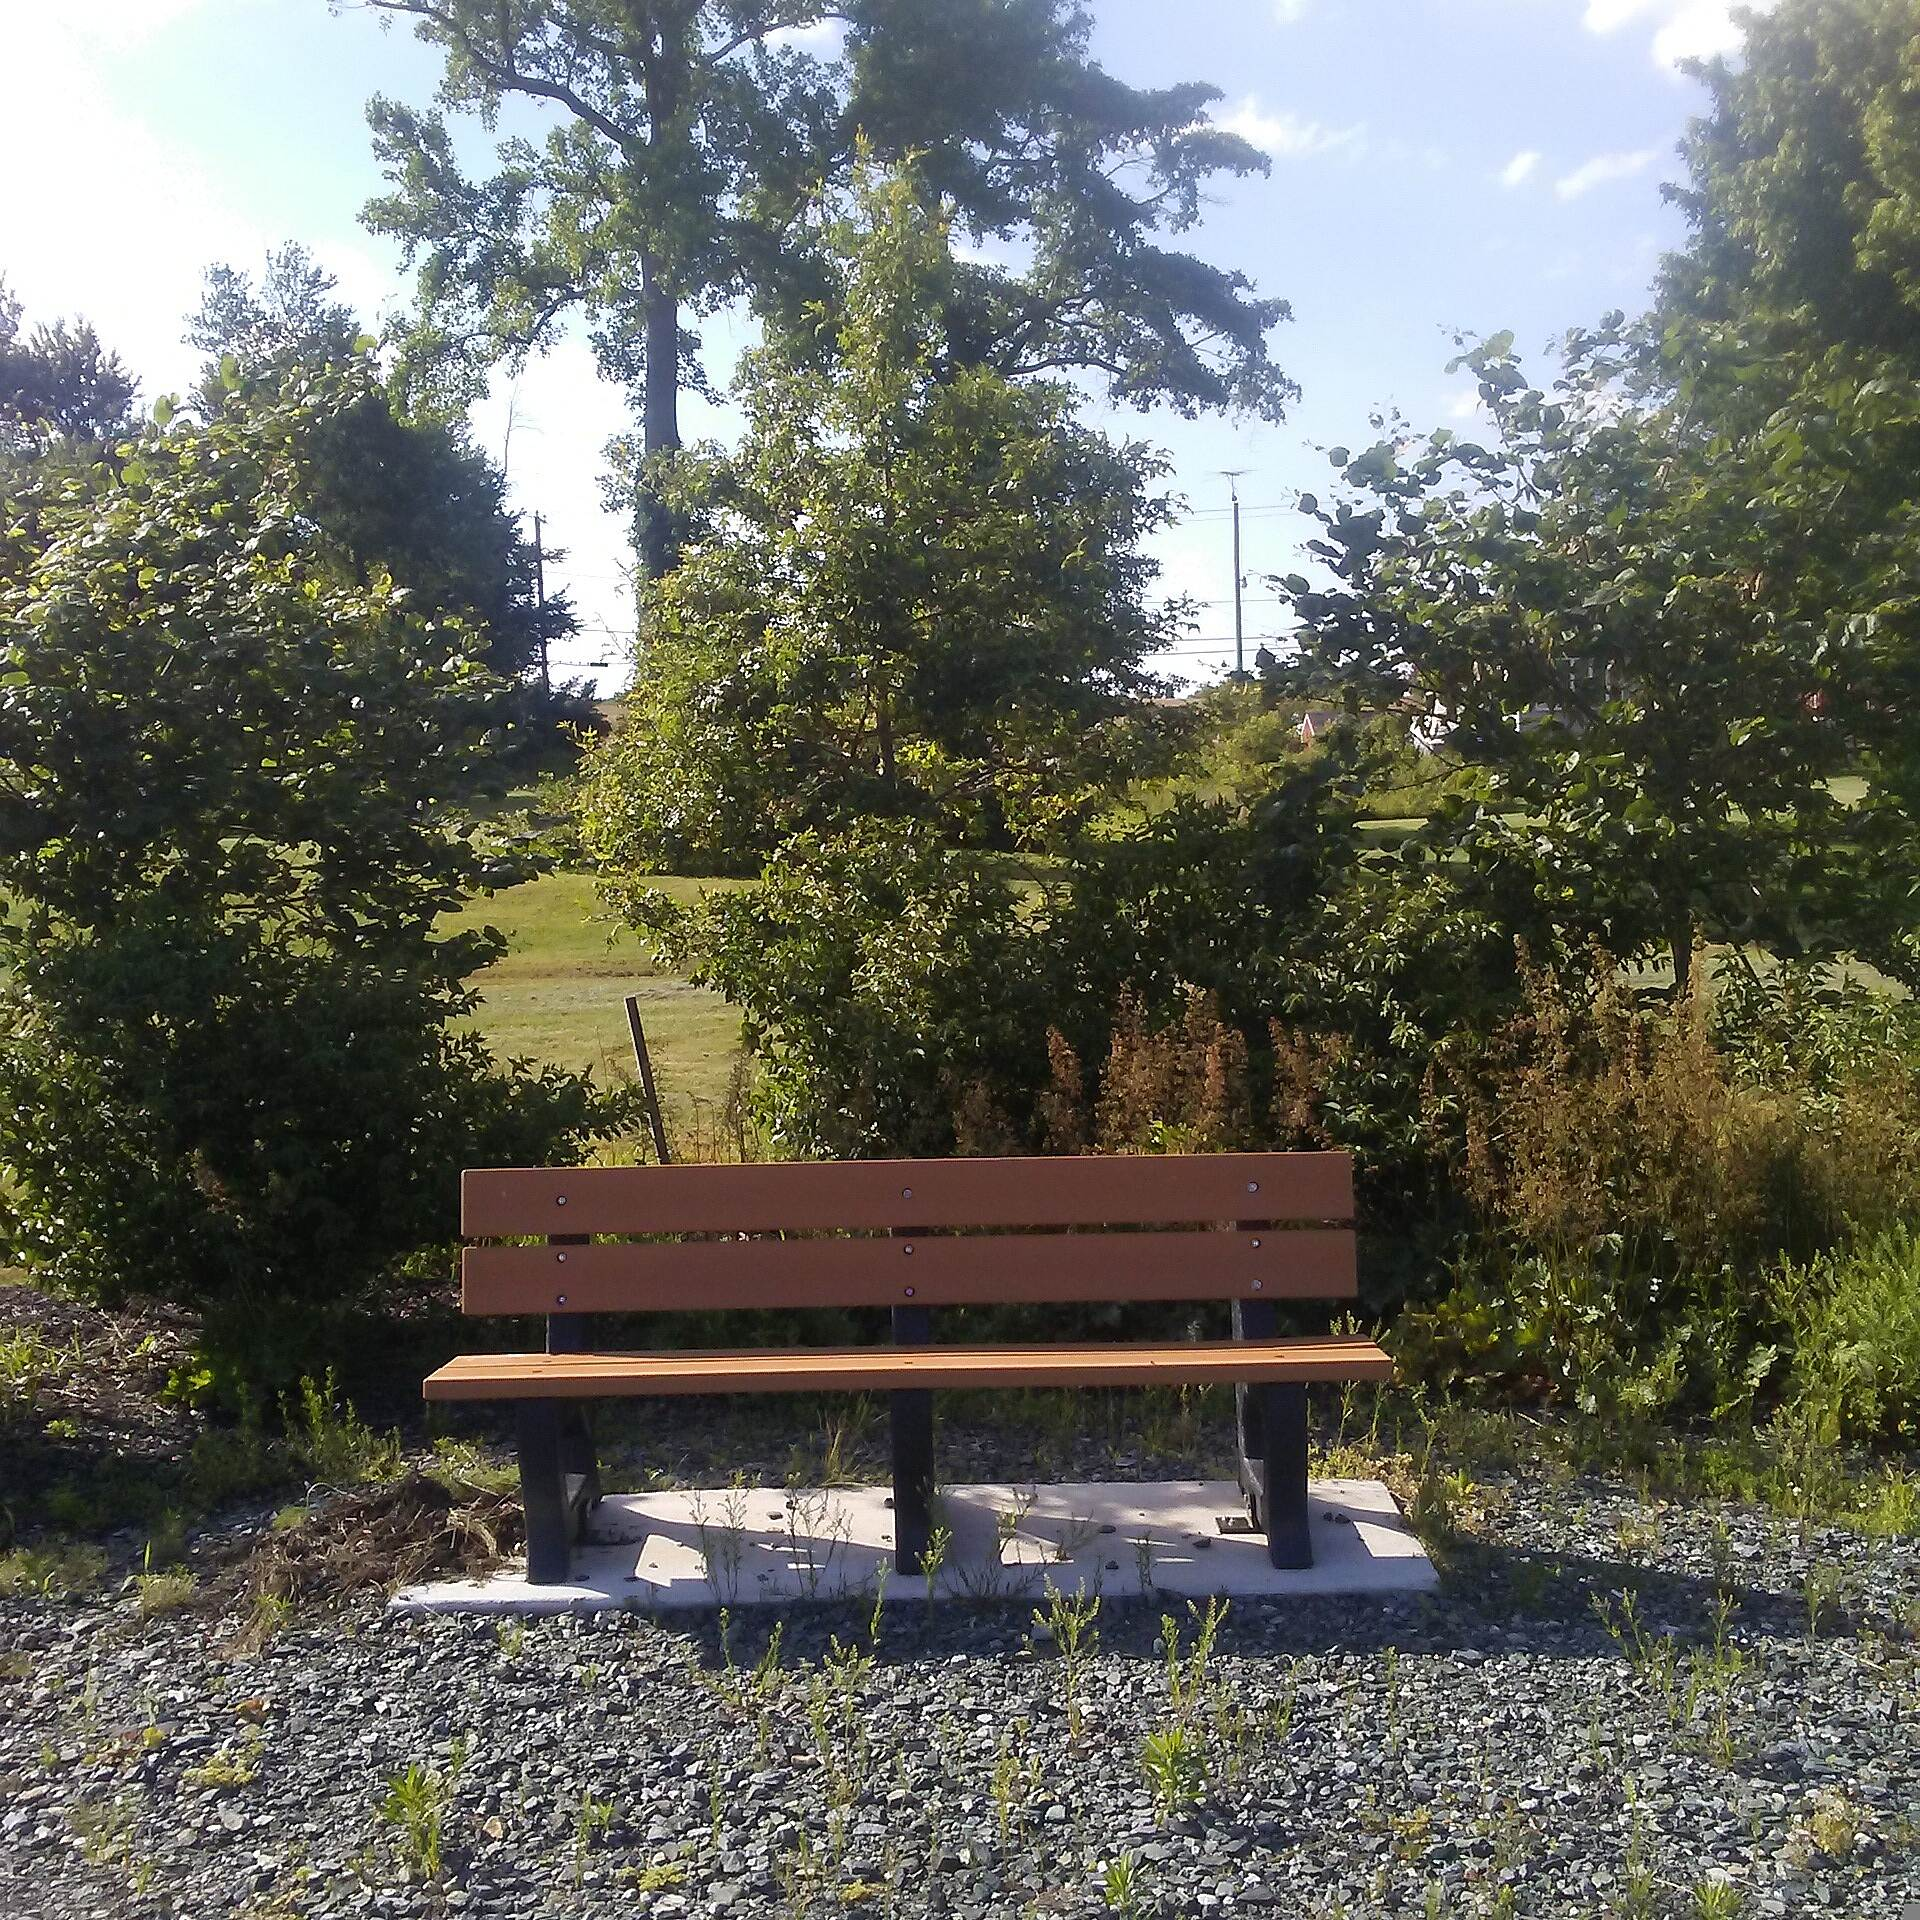 Ben Cardin C&D Canal Recreational Trail Ben Cardin C&D Canal Recreational Trail One of the few negative aspects of the trail is the lack of shade, which can make it very hot and sunny in the warmer months of the year. This problem should be rectified in the near future as the shrubbery grows around these benches.